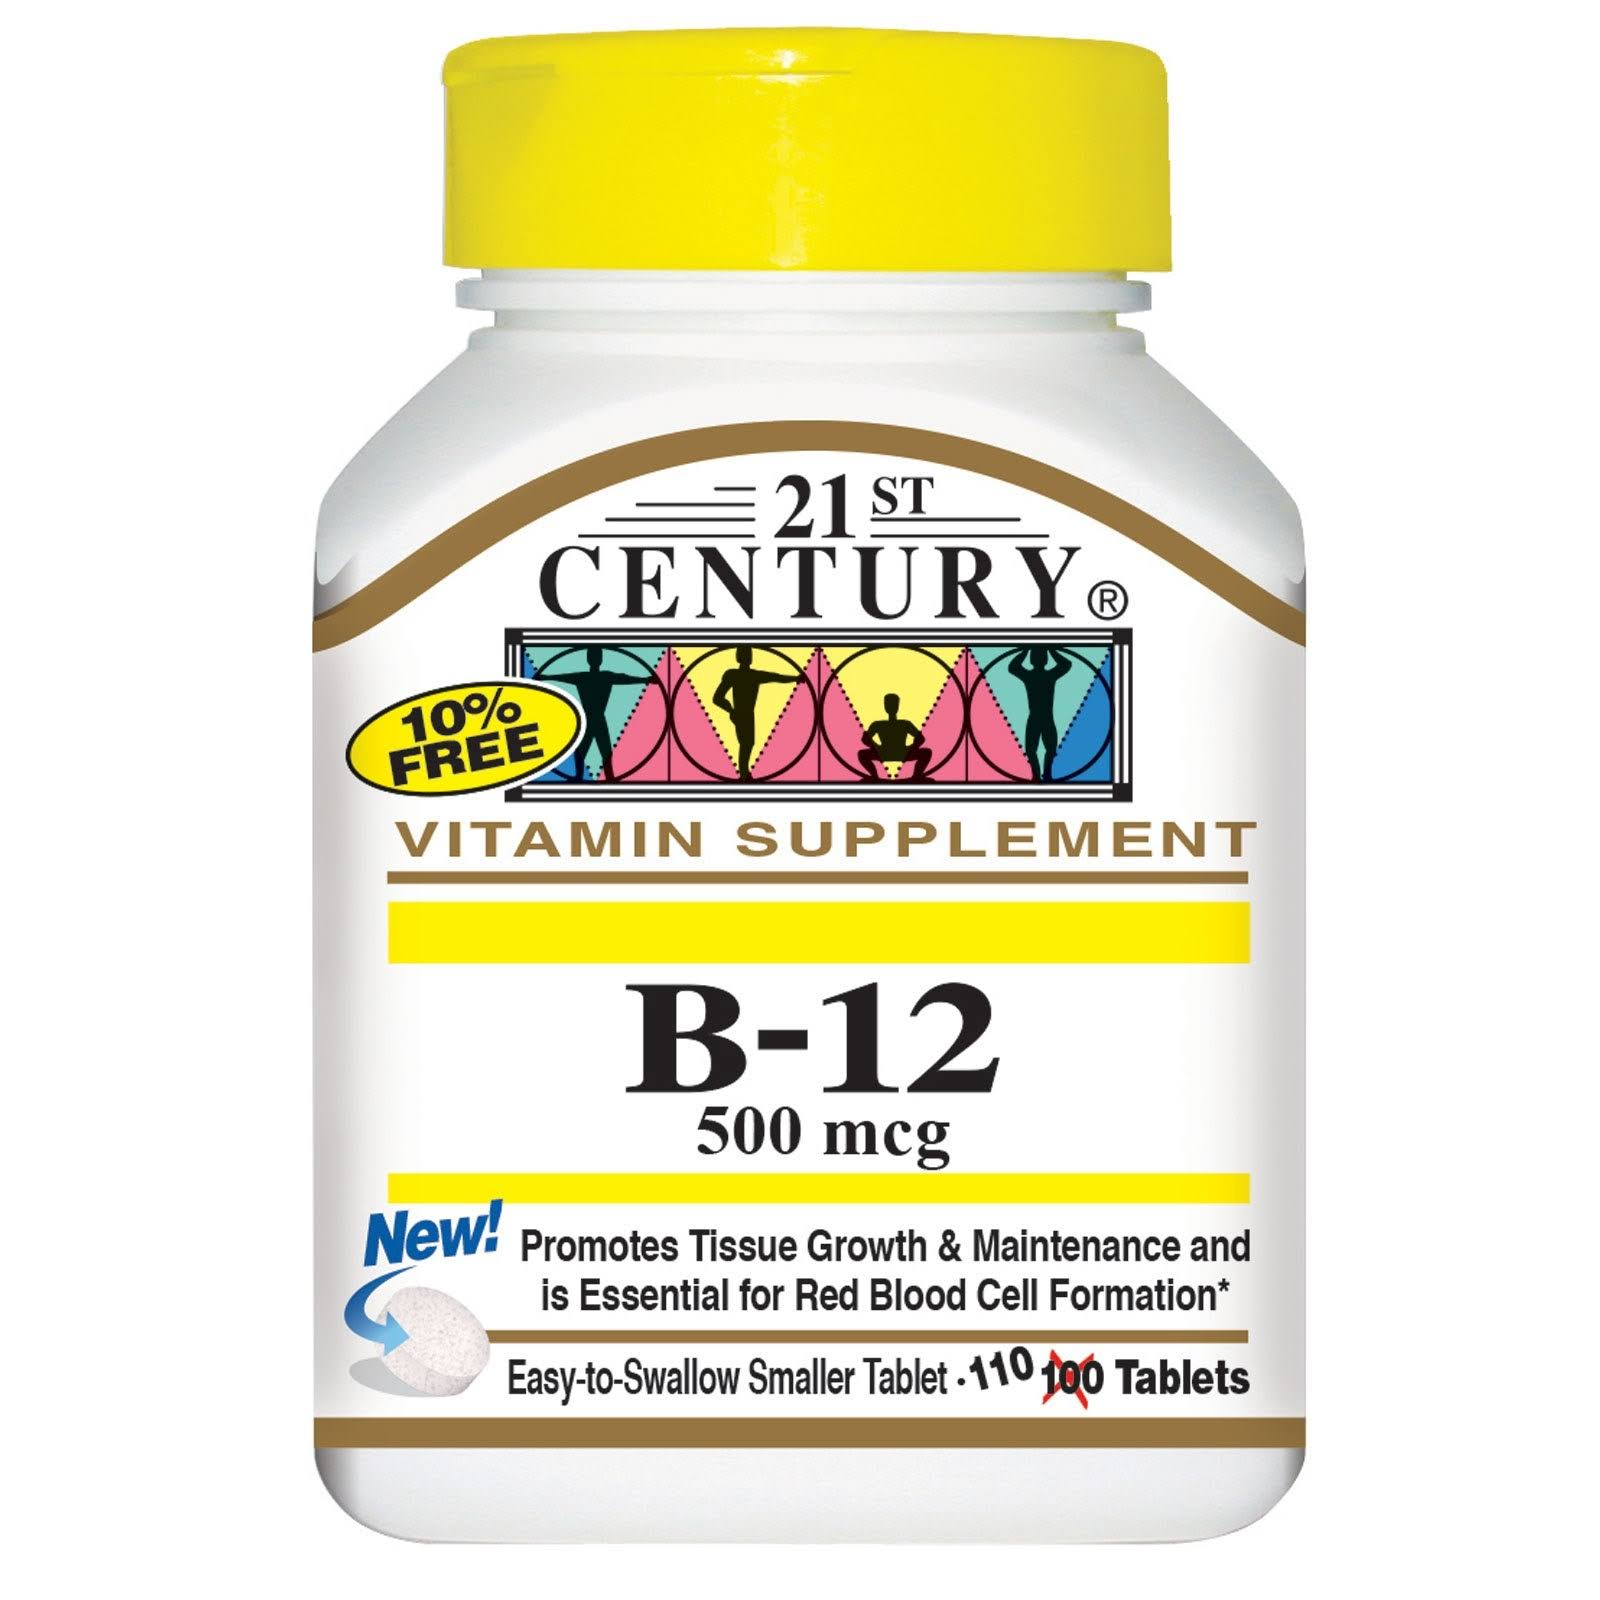 21st Century Vitamin B-12 Dietary Supplement - 500mcg, 110 Tablets